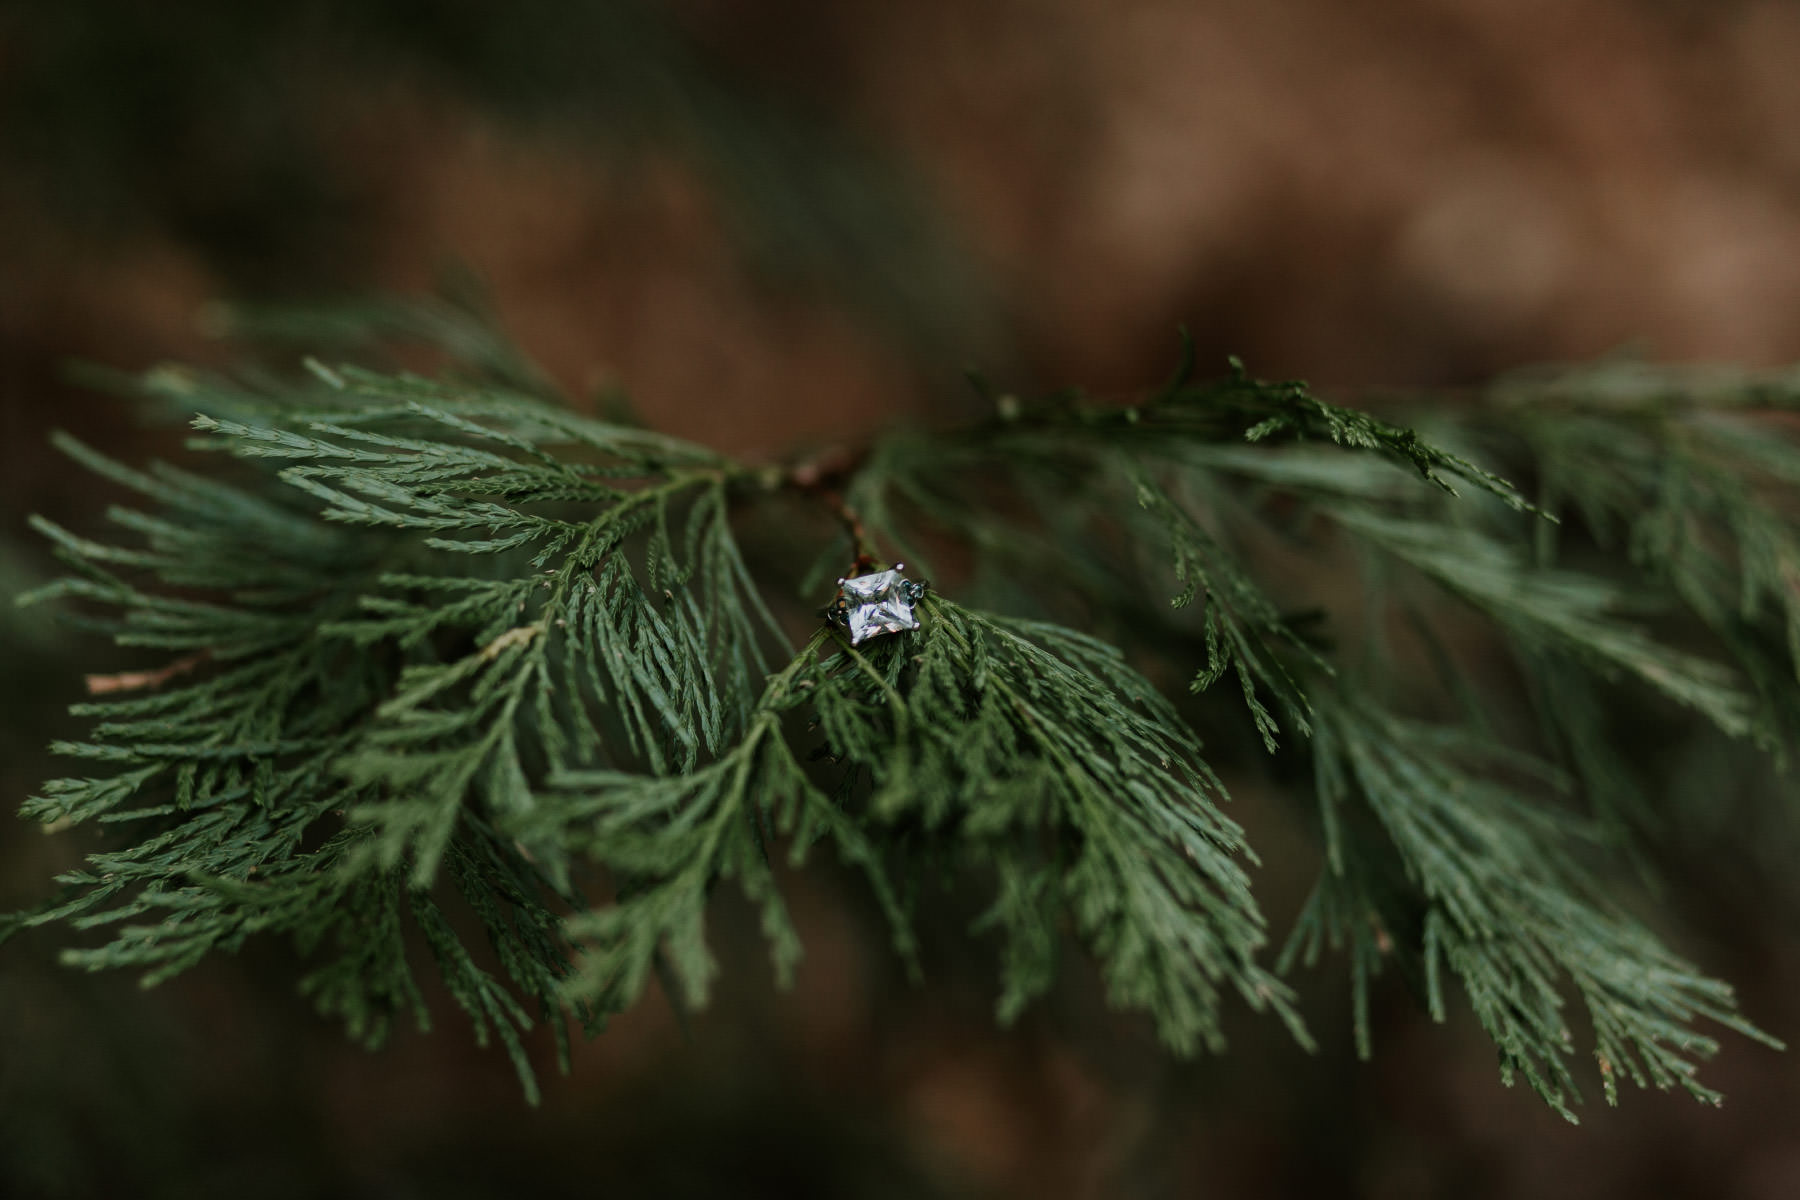 Engagement ring on pine branch at Palomar Mountain